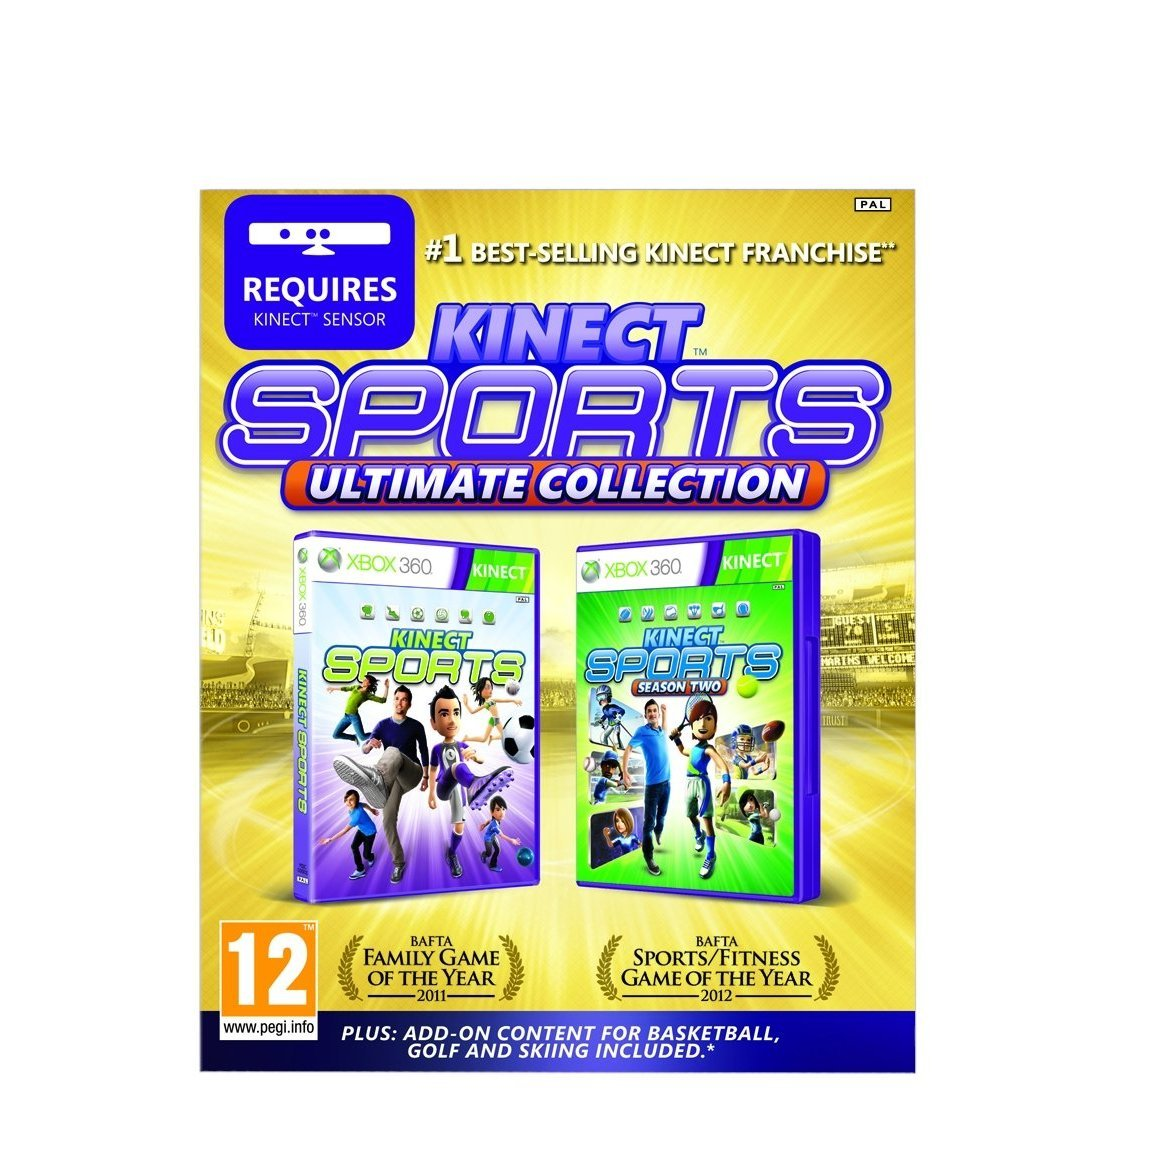 Microsoft Kinect Sports Ultimate Collection (Xbox 360) product image